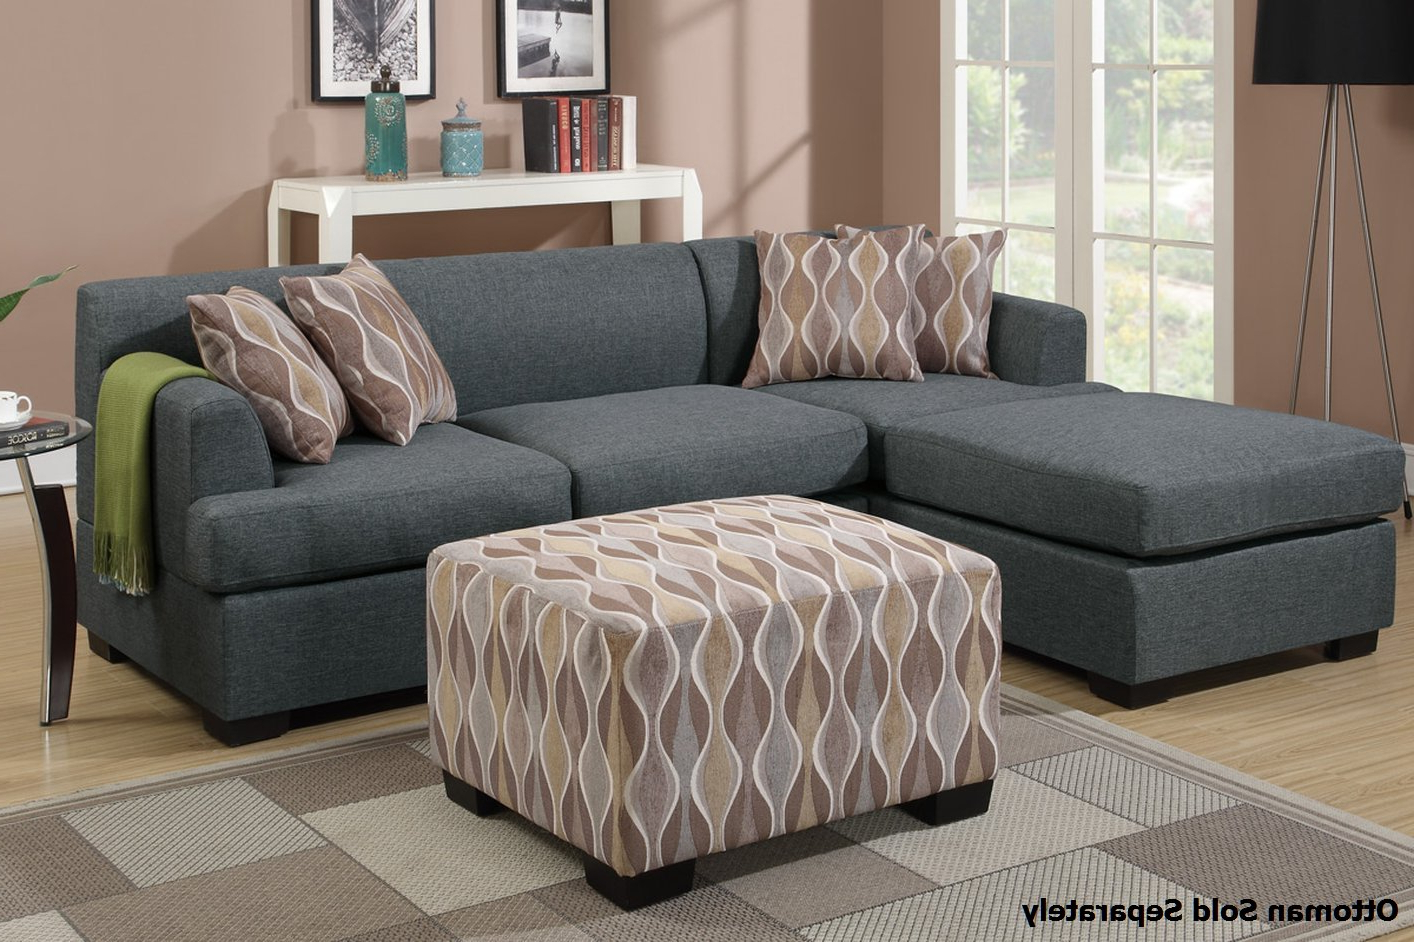 Grey Fabric Sectional Sofa – Steal A Sofa Furniture Outlet In Best And Newest Noa Sectional Sofas With Ottoman Gray (View 6 of 25)